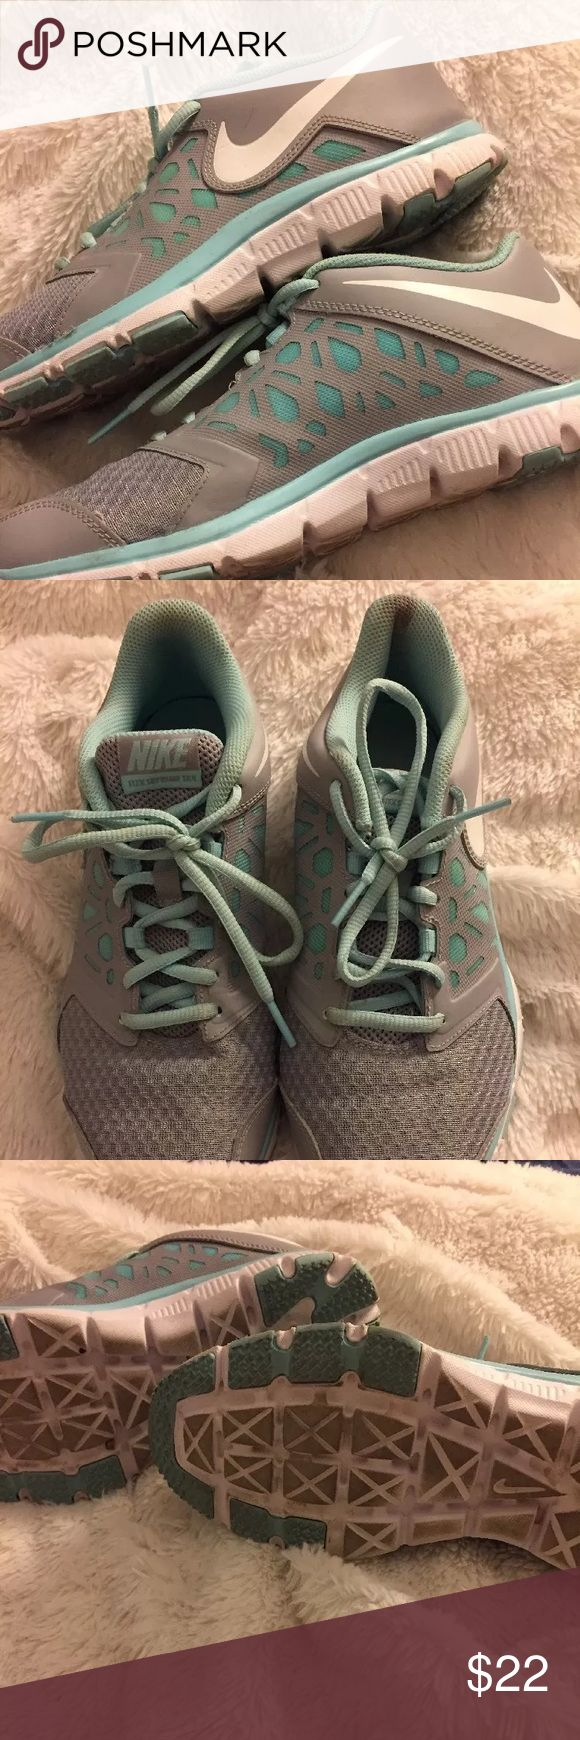 Tiffany blue Nike tennis shoes size 7Y Tiffany blue Nikes!! Really cute. Worn twice and they gave me blisters due to being the wrong size. There's a small blood stain the the heel of one shoe and it's clean. Nike Shoes Sneakers